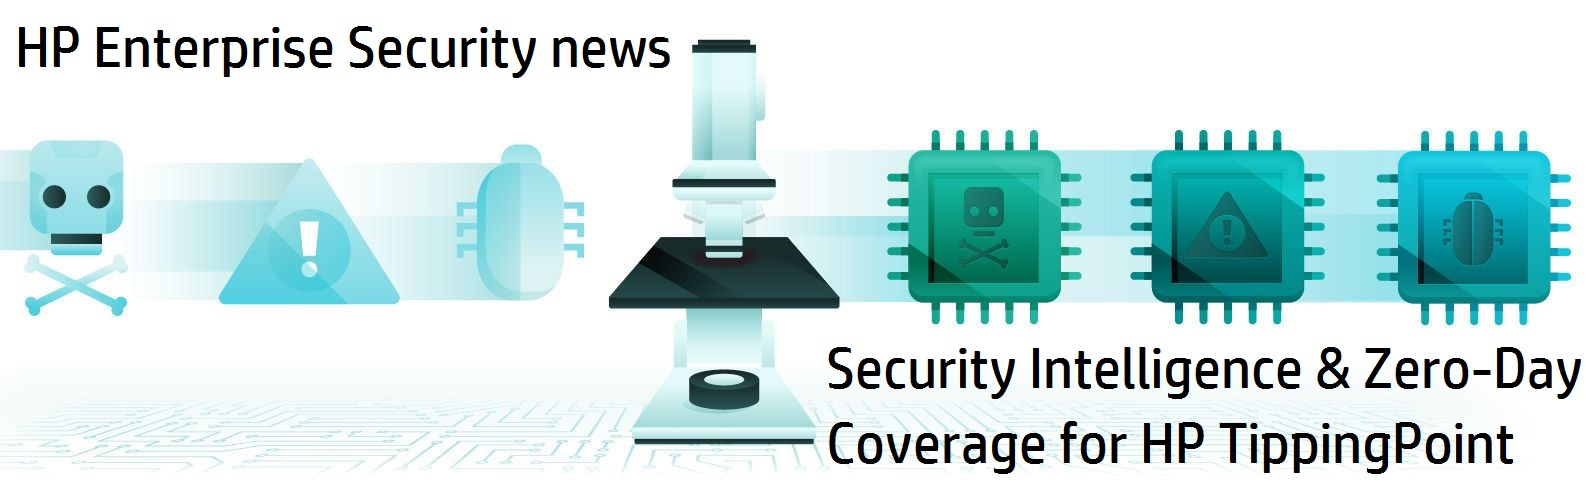 Enterprise security: What's new for the week of Au